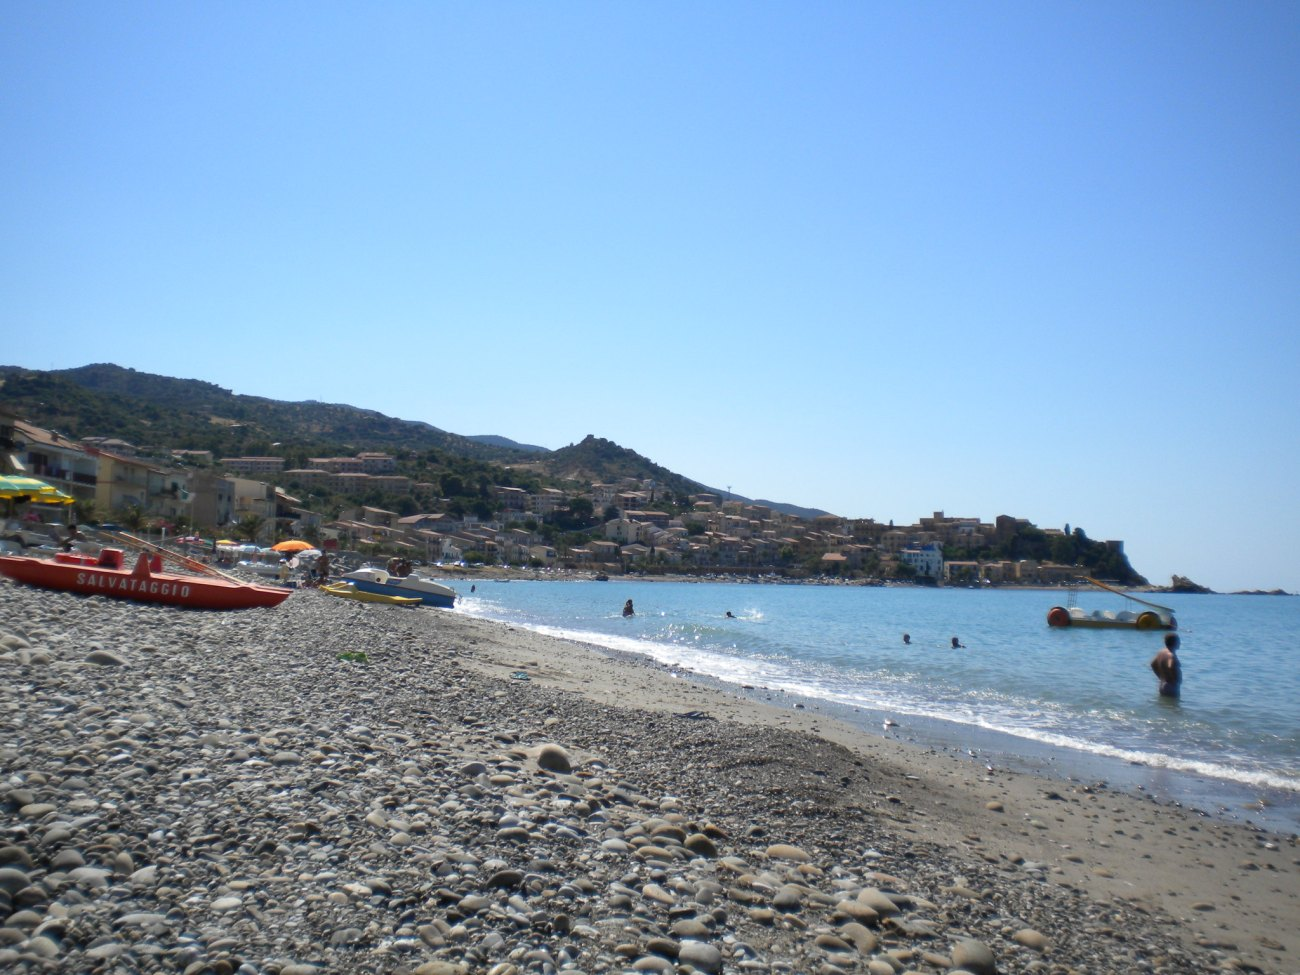 Beach 30 min away from Palermo, Sicily